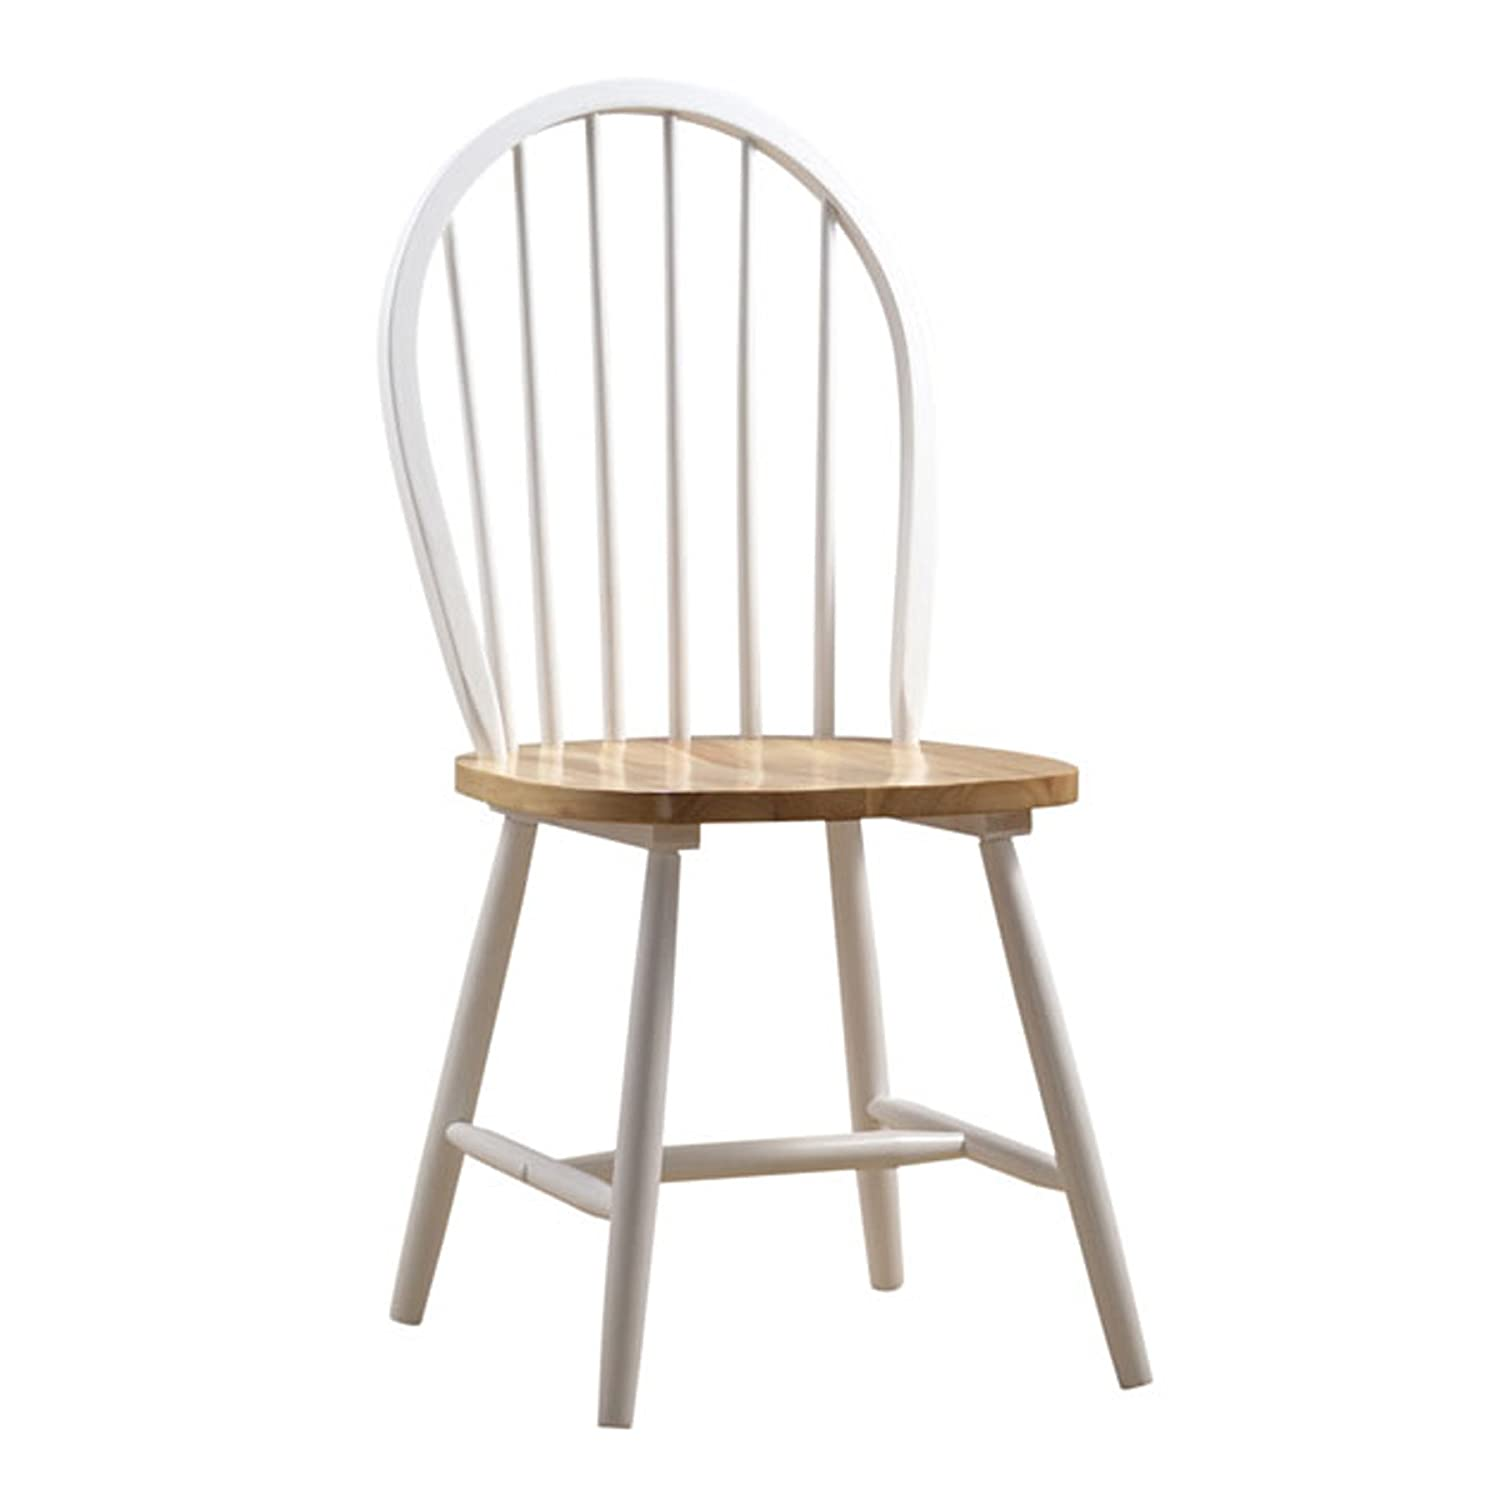 Boraam 31316 Farmhouse Chair, White/Natural, Set of 2